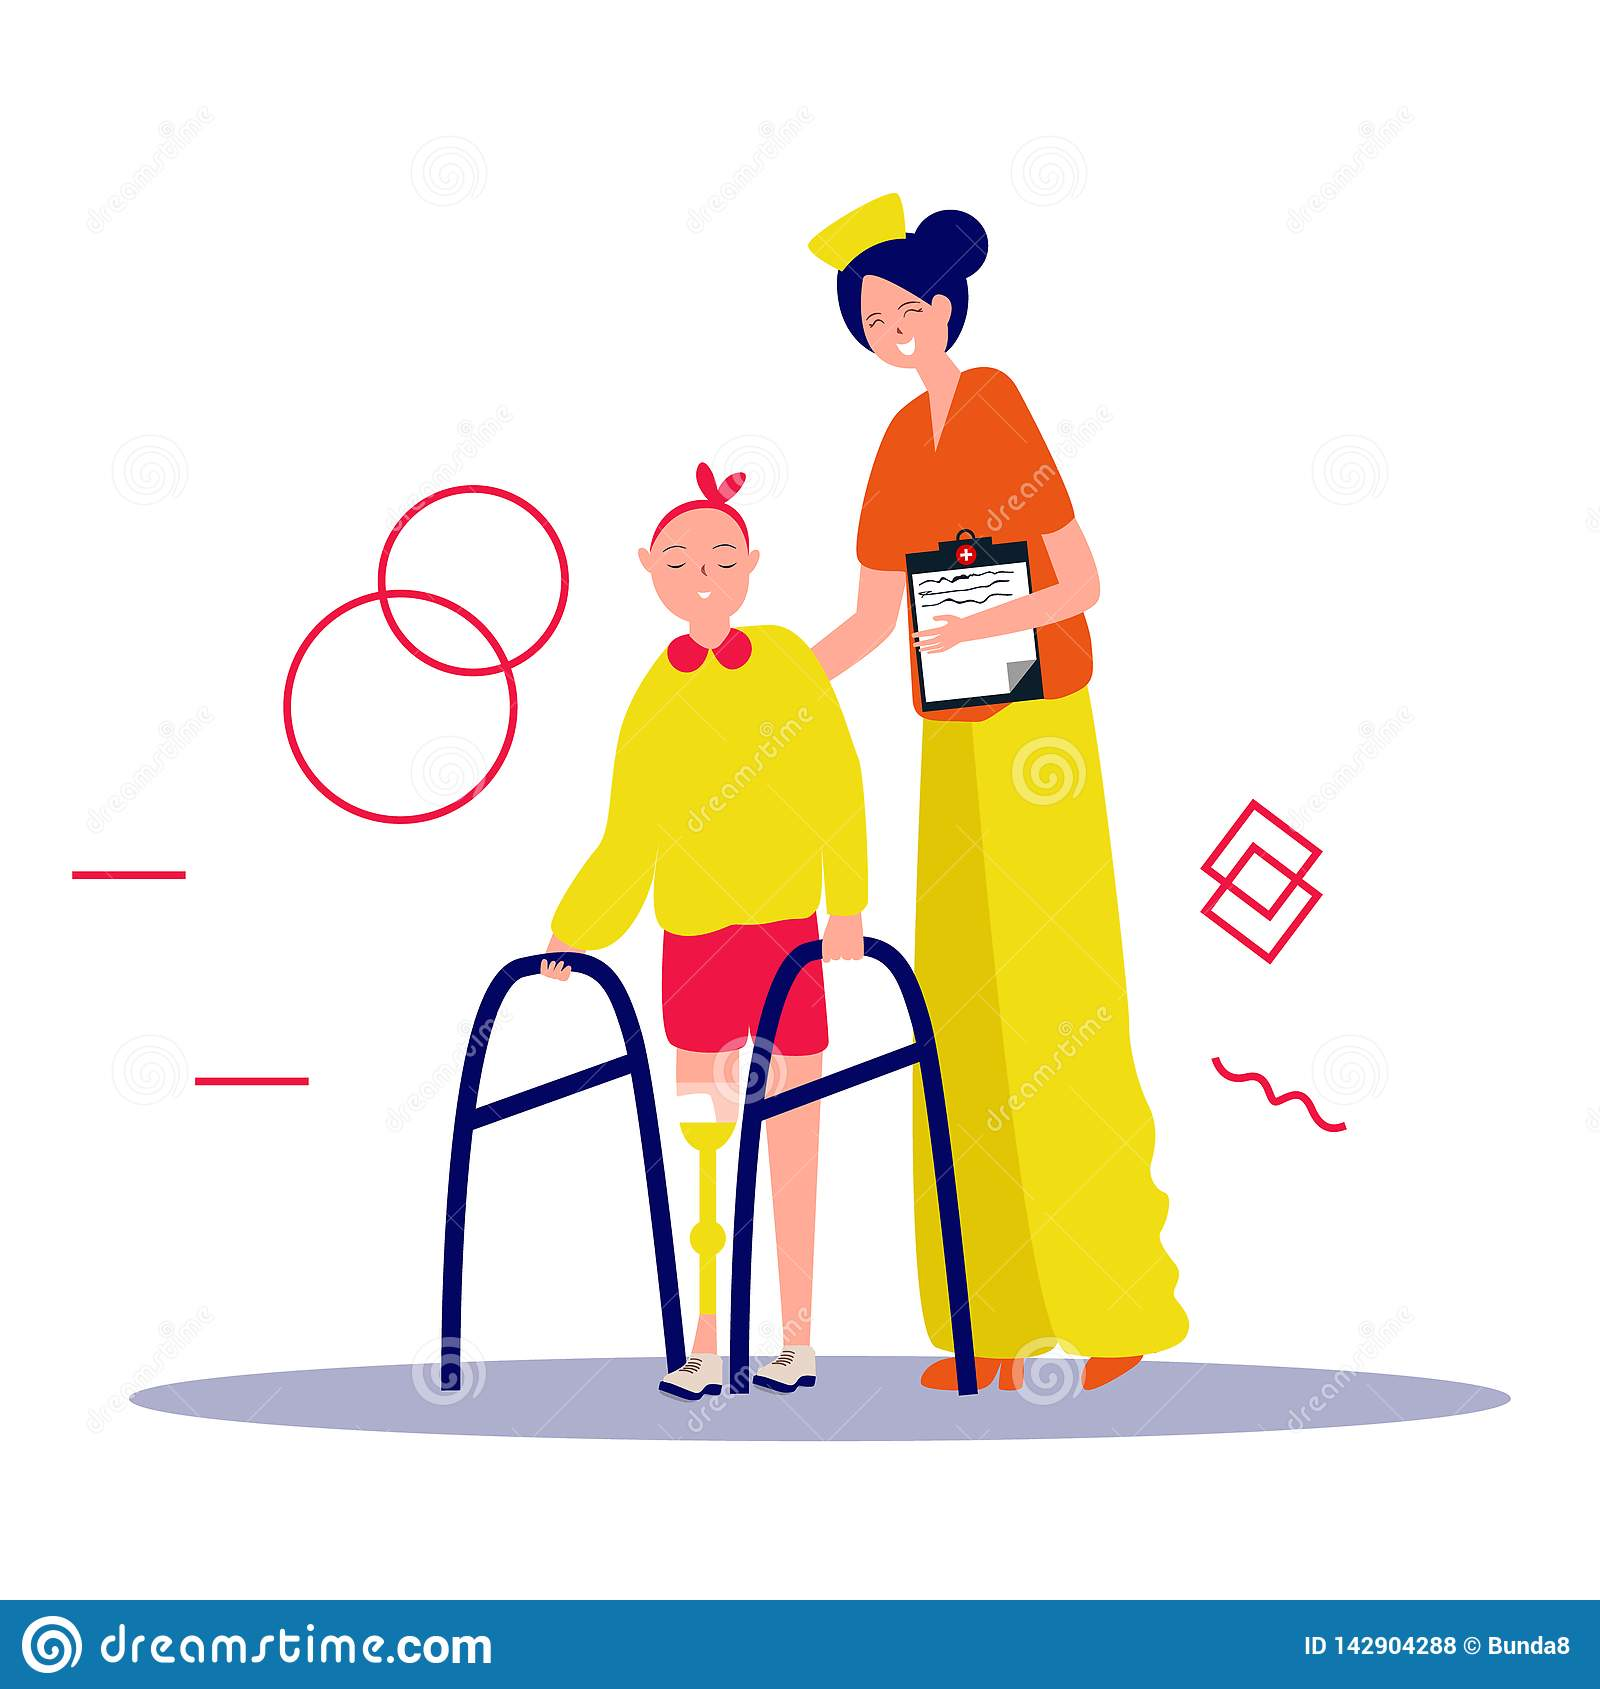 Nurse helps patient to go to the walker. Caring for the disabled person. Vector illustration in a flat style